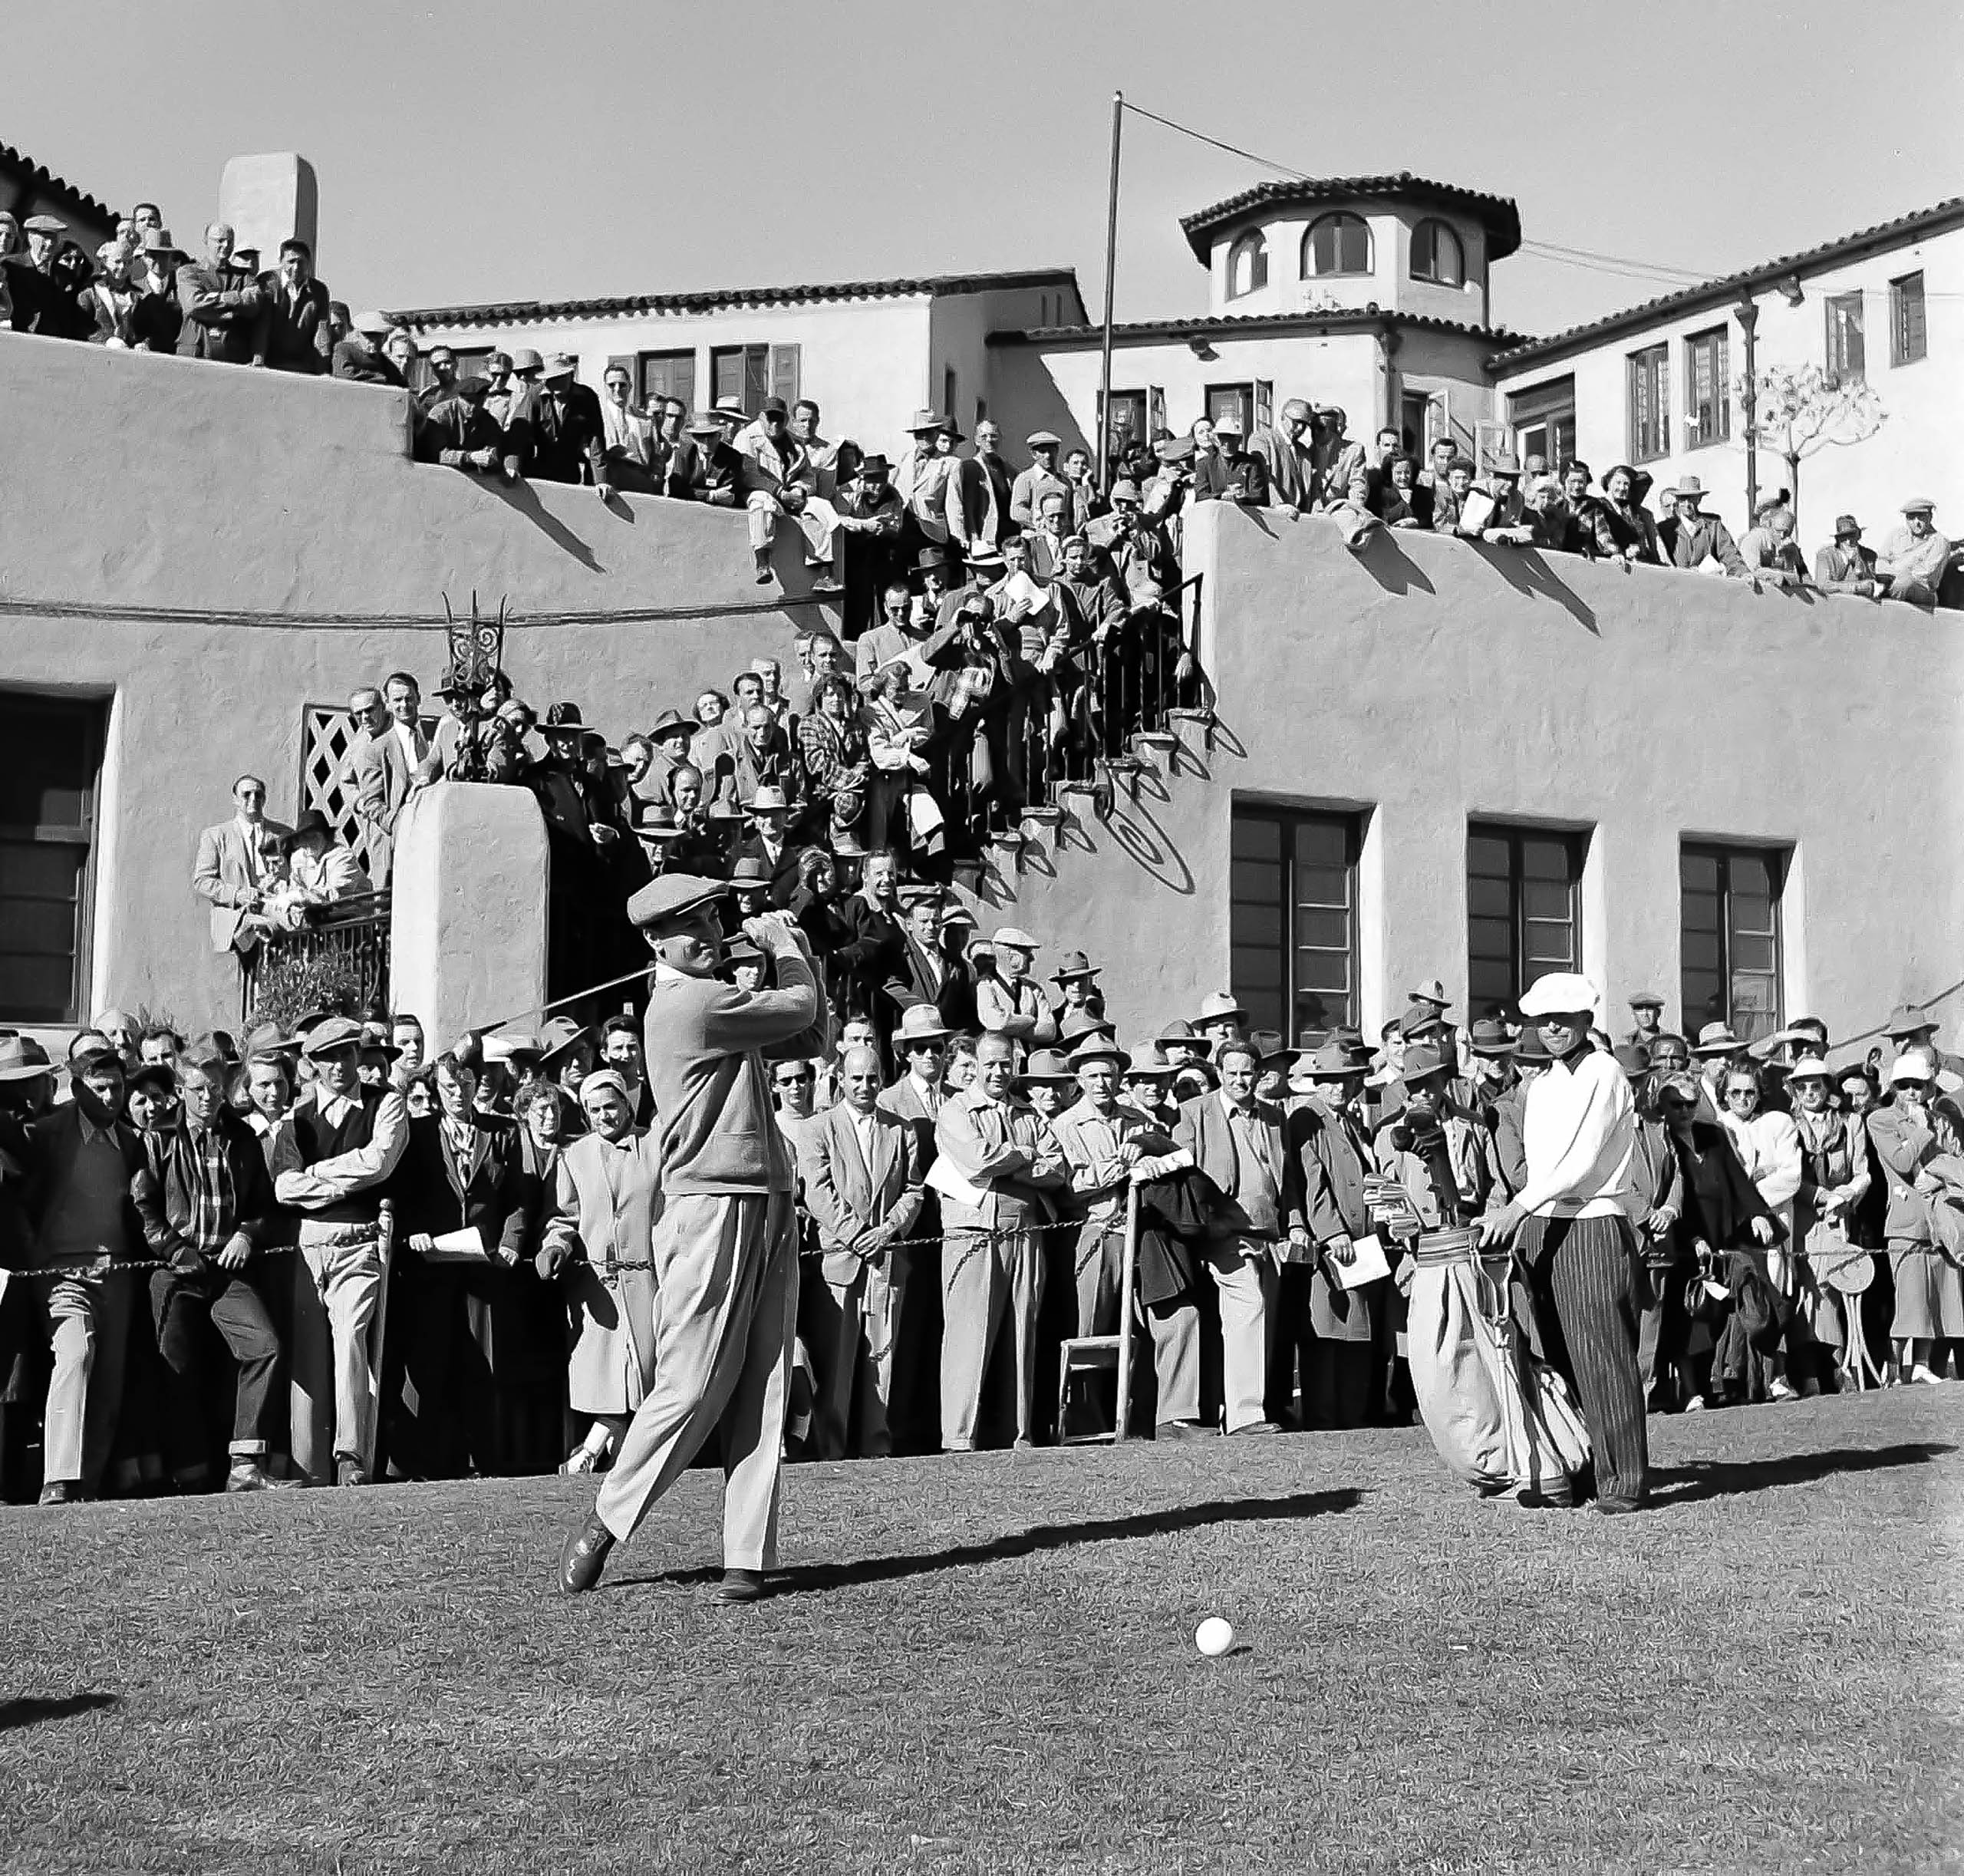 Ben Hogan surrounded by fans, Los Angeles Open, Riviera Country Club. (Photo By Peter Stackpole/The LIFE Premium Collection via Getty Images/Getty Images)